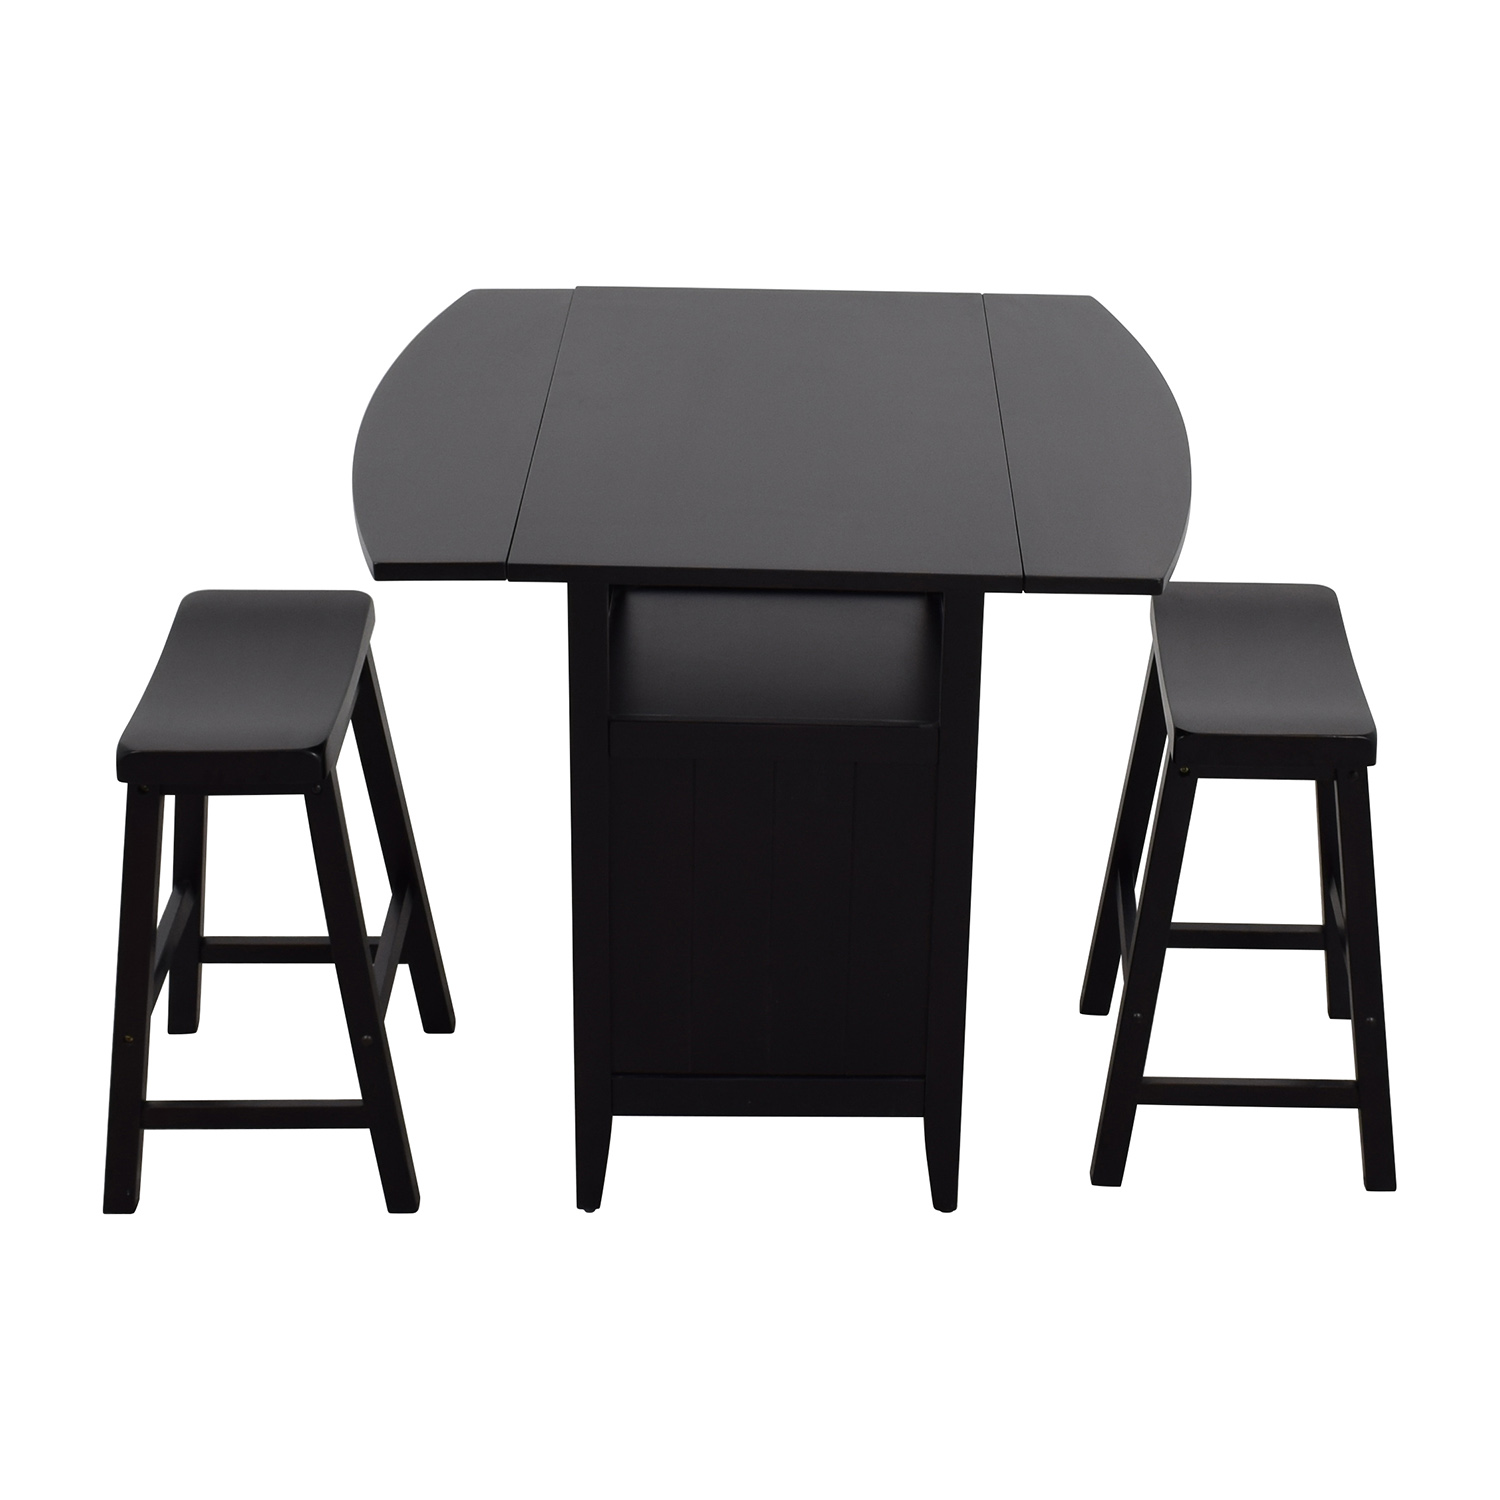 Dinette Wood Table with Storage with Two Stools